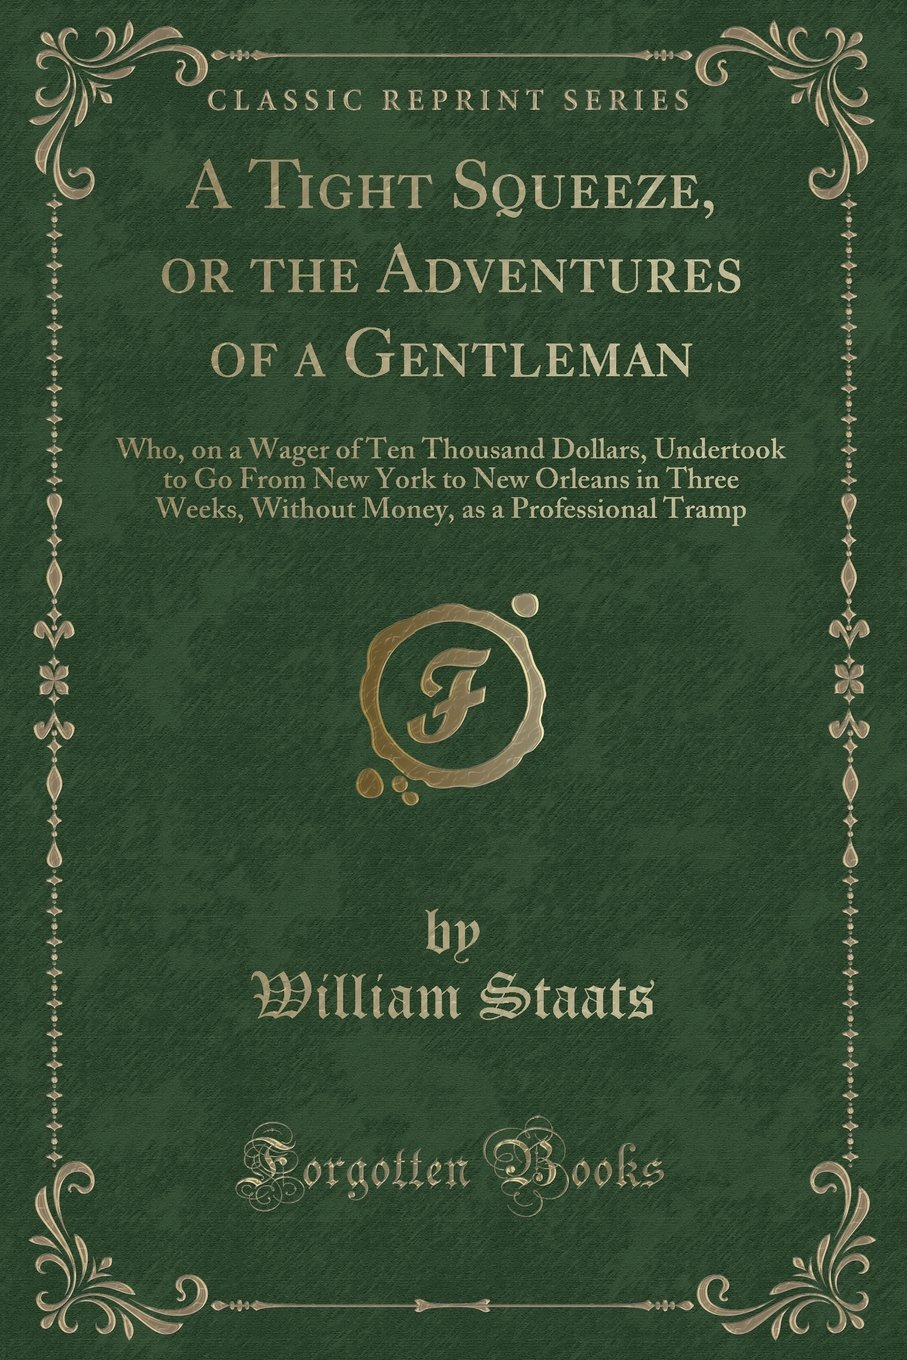 Read Online A Tight Squeeze, or the Adventures of a Gentleman: Who, on a Wager of Ten Thousand Dollars, Undertook to Go From New York to New Orleans in Three ... as a Professional Tramp (Classic Reprint) PDF